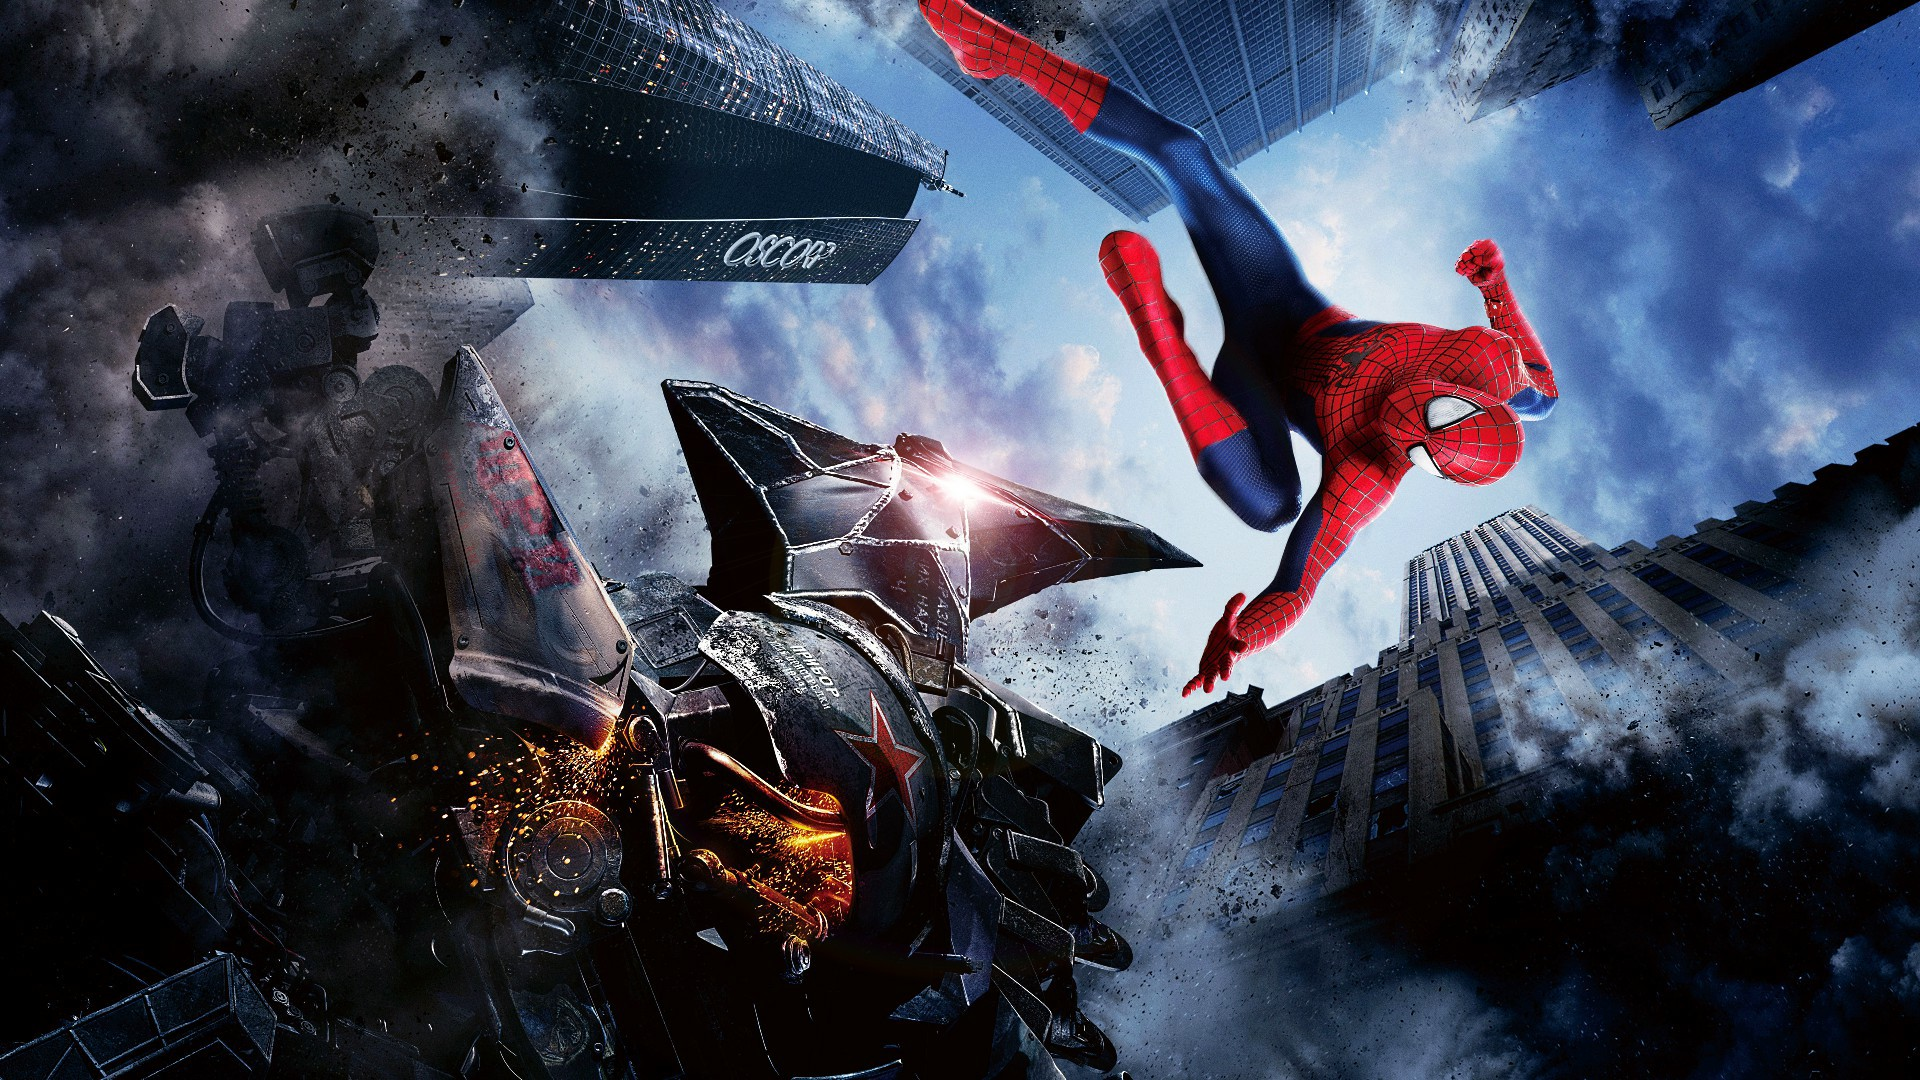 Spiderman-HD-1920%C3%971080-Spiderman-Picture-Adorab-wallpaper-wpc5808938